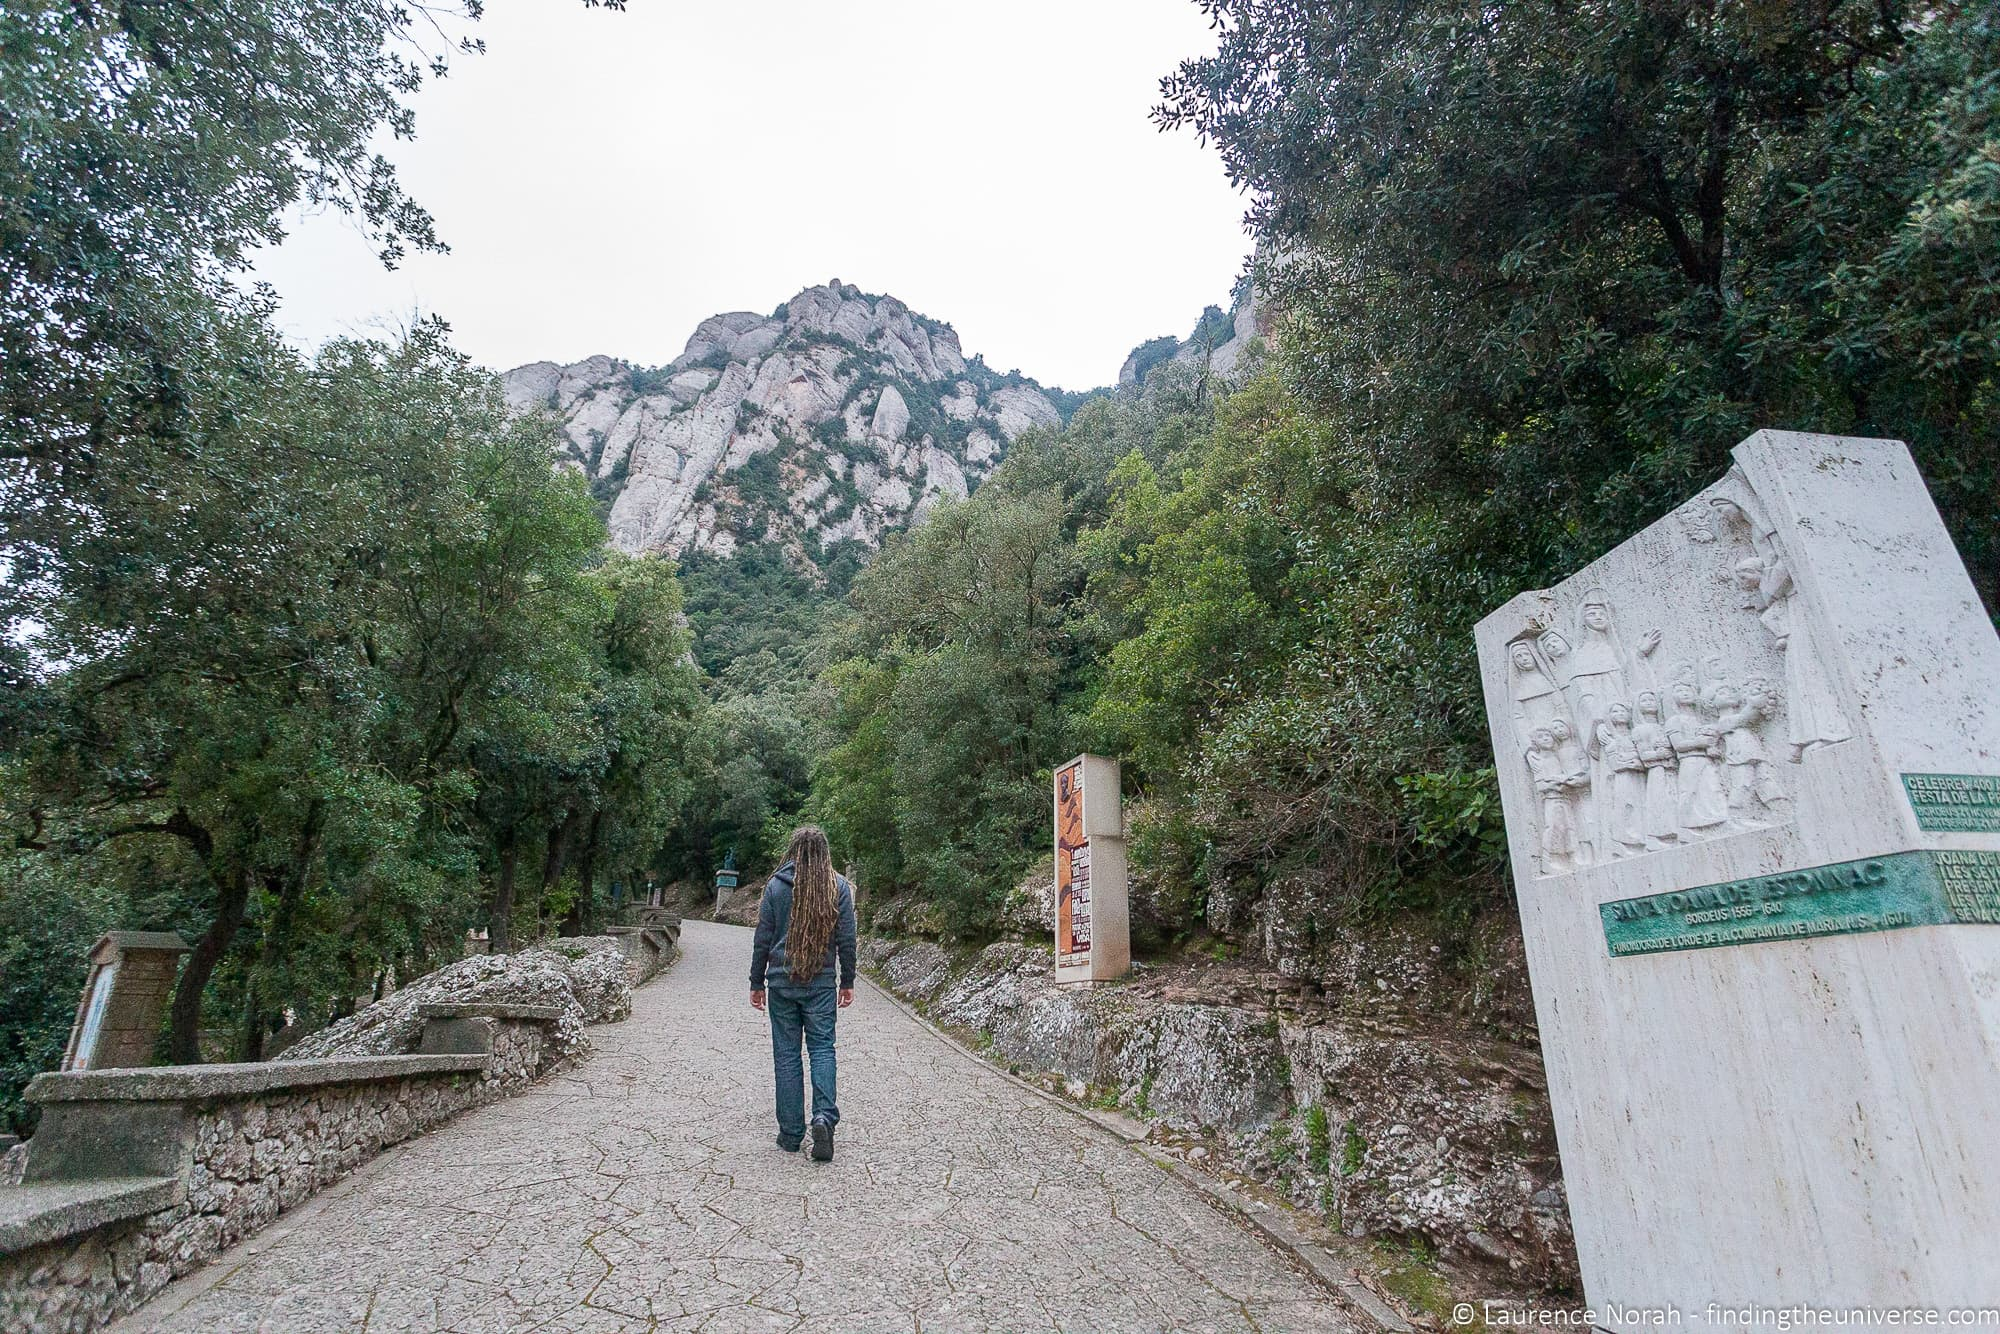 Hiking at Montserrat